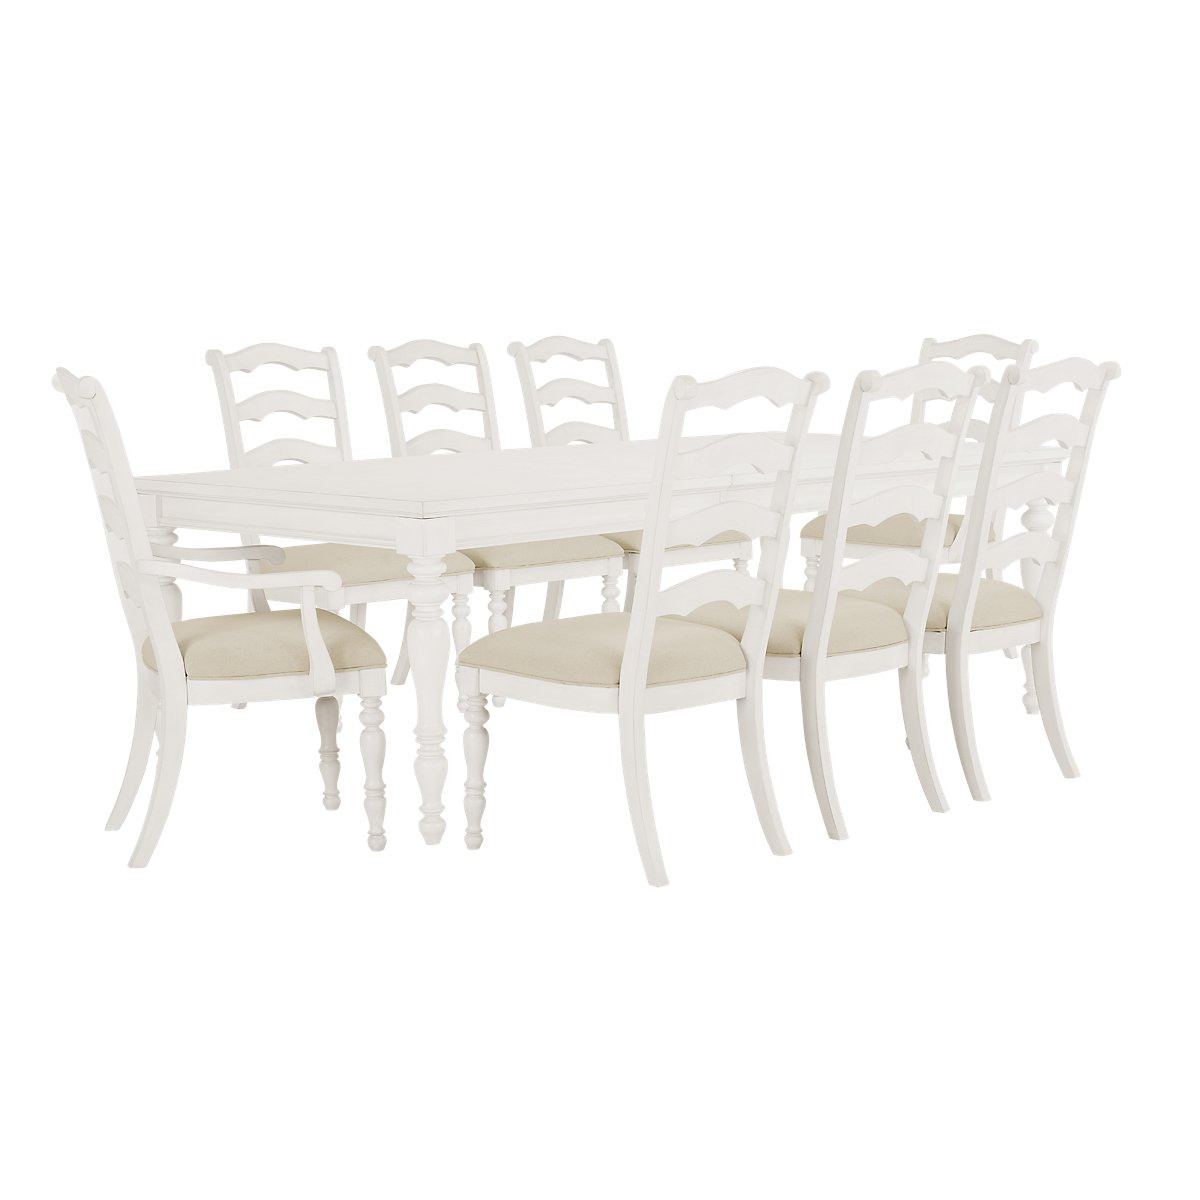 Savannah Ivory Wood Rect Table & 4 Chairs